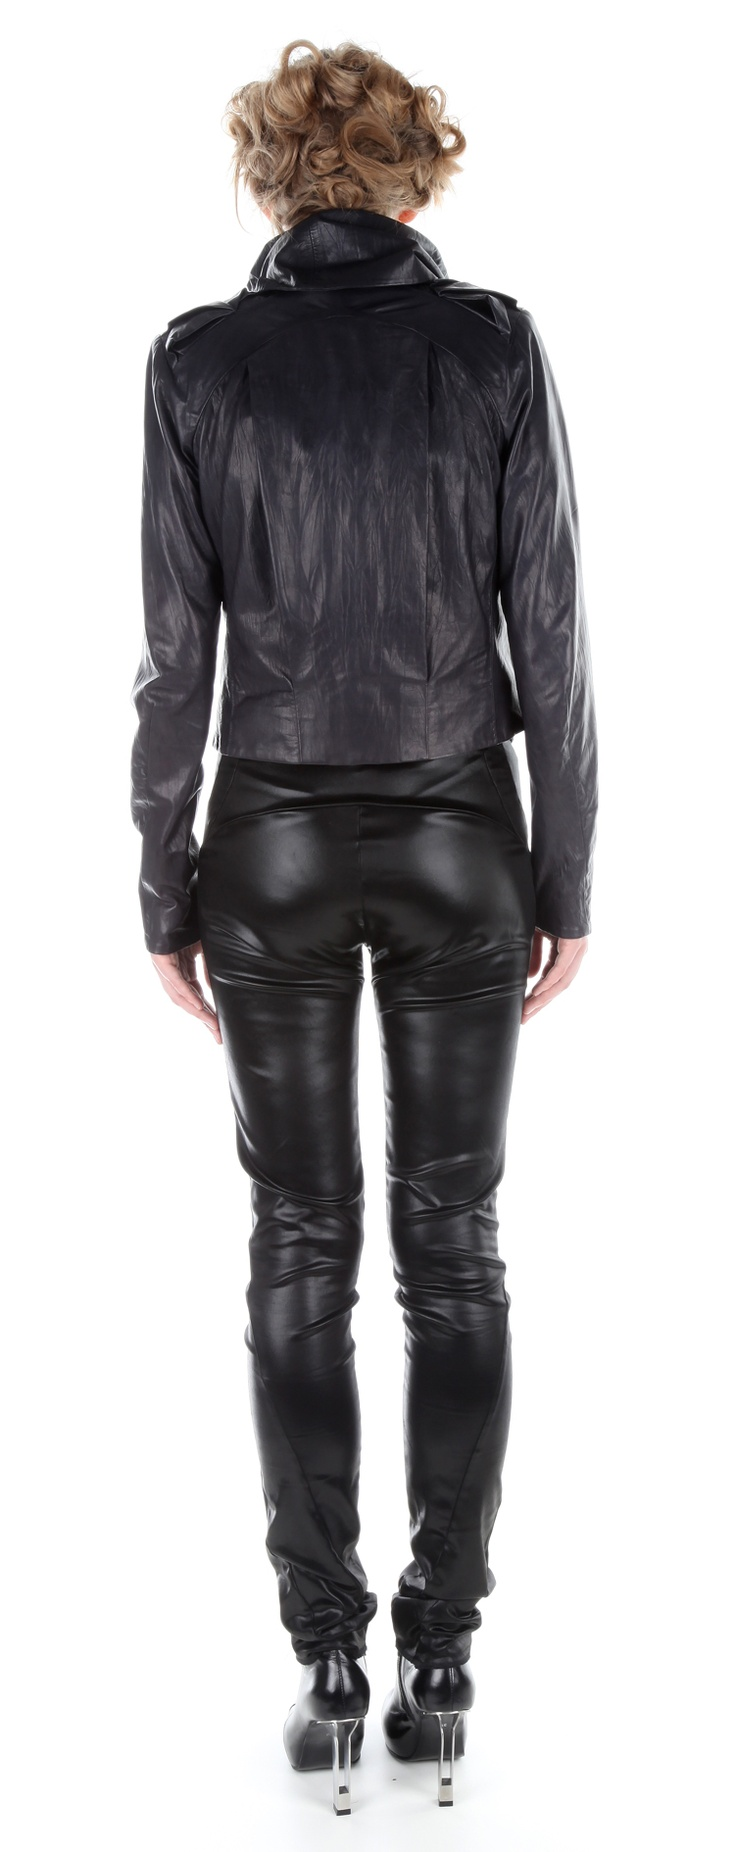 Back view: Jacket ( leather), jumpsuit ( silk satin), shoes ( leather, stainless-steel heel)